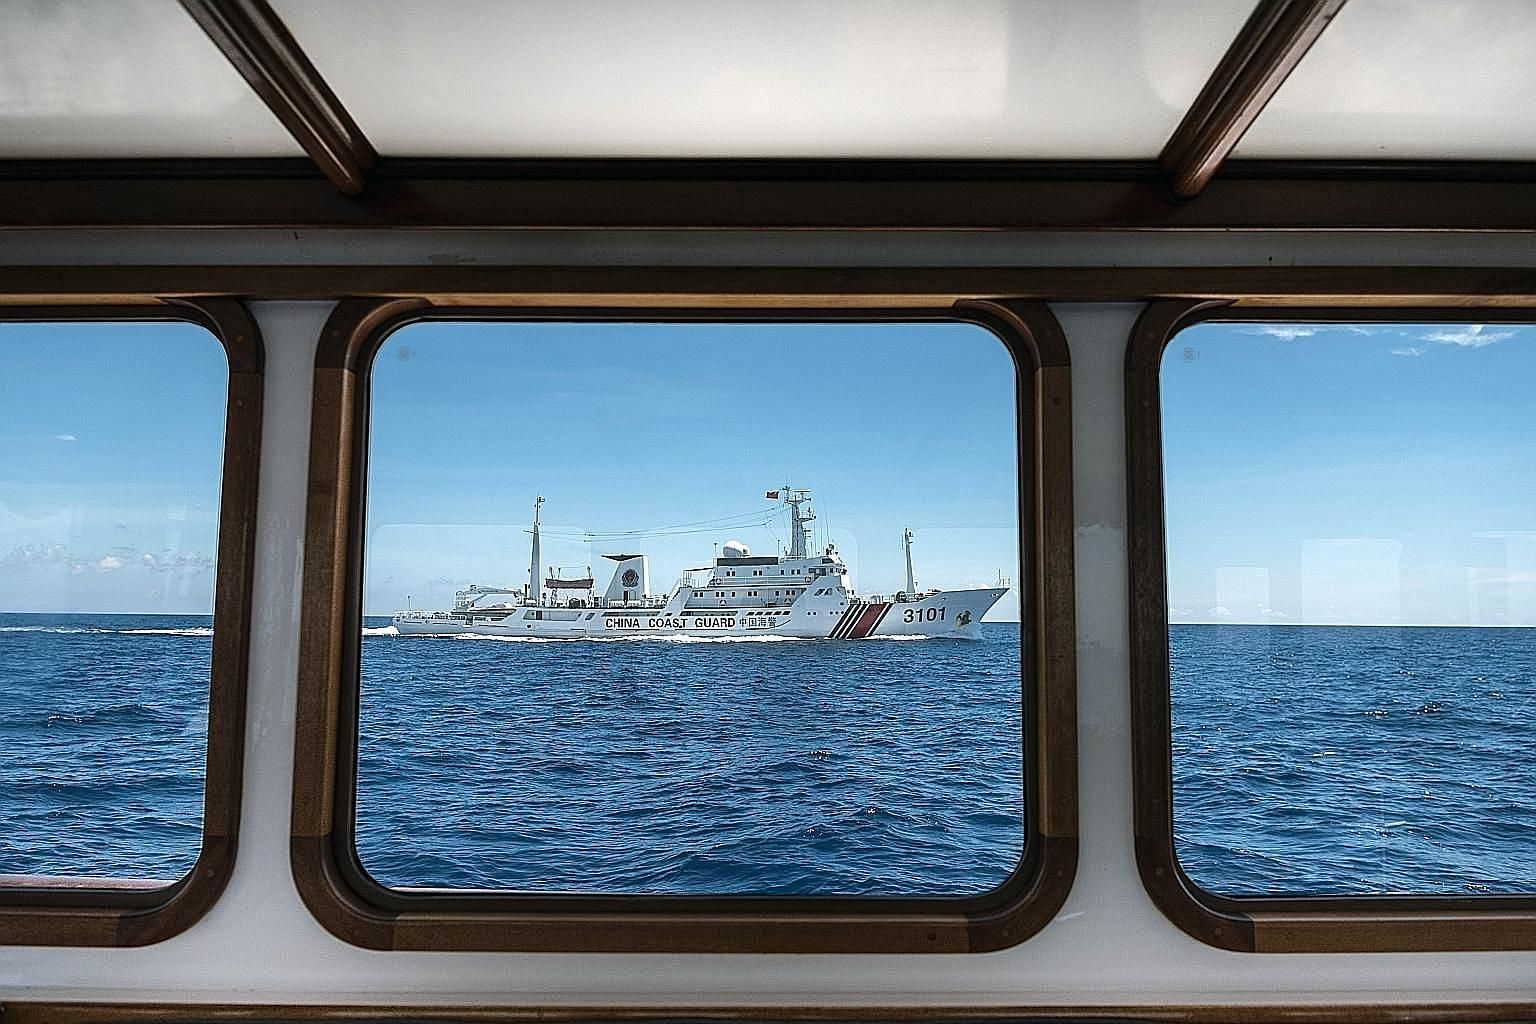 A file photo from 2016 showing a Chinese coast guard ship near Scarborough Shoal, a reef in the South China Sea that is claimed by both China and the Philippines.